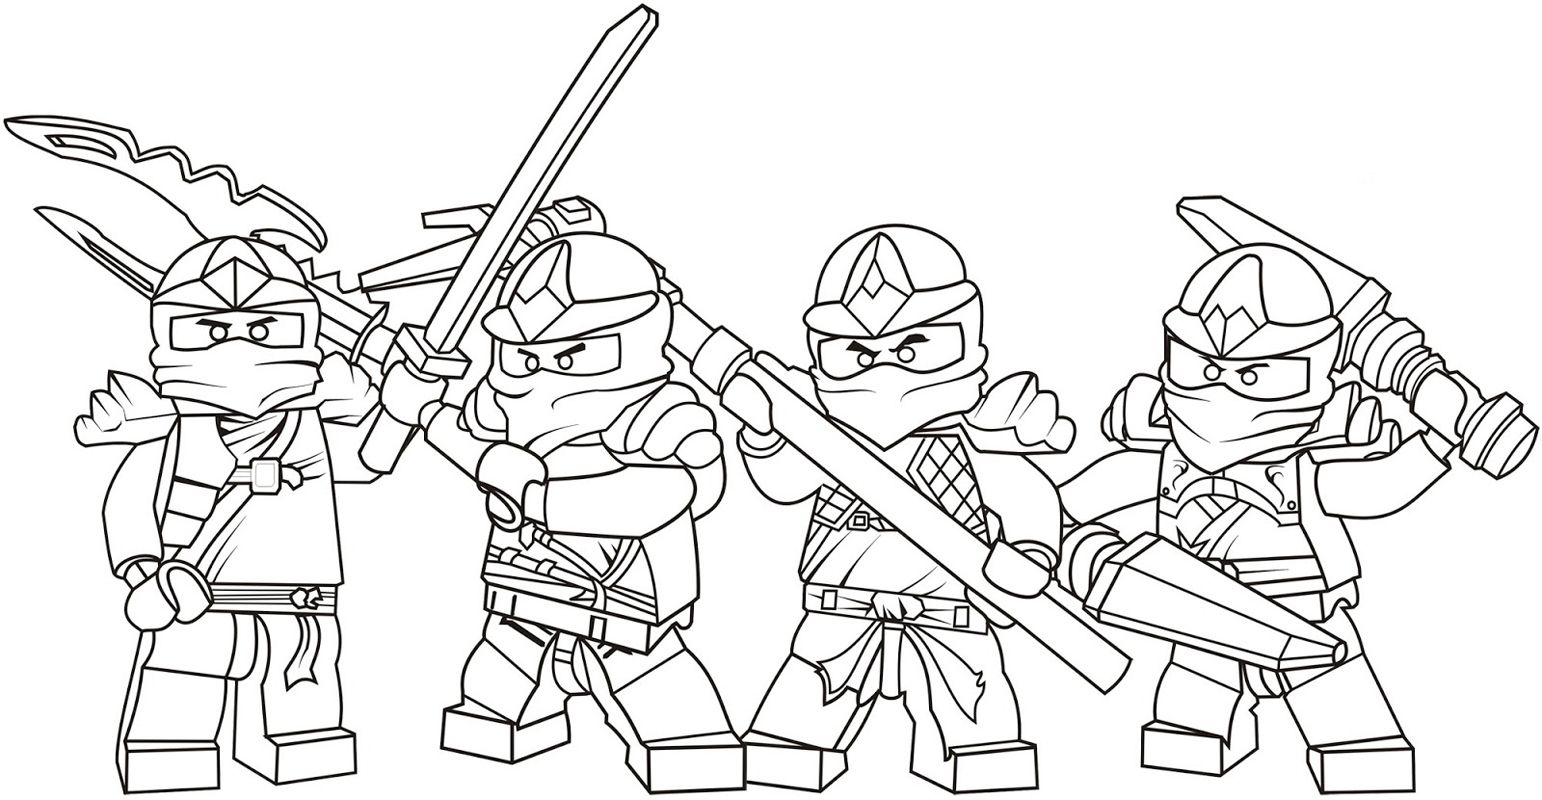 coloring pages chima | Lego Ninja Go Coloring Pages 8 - Free ...